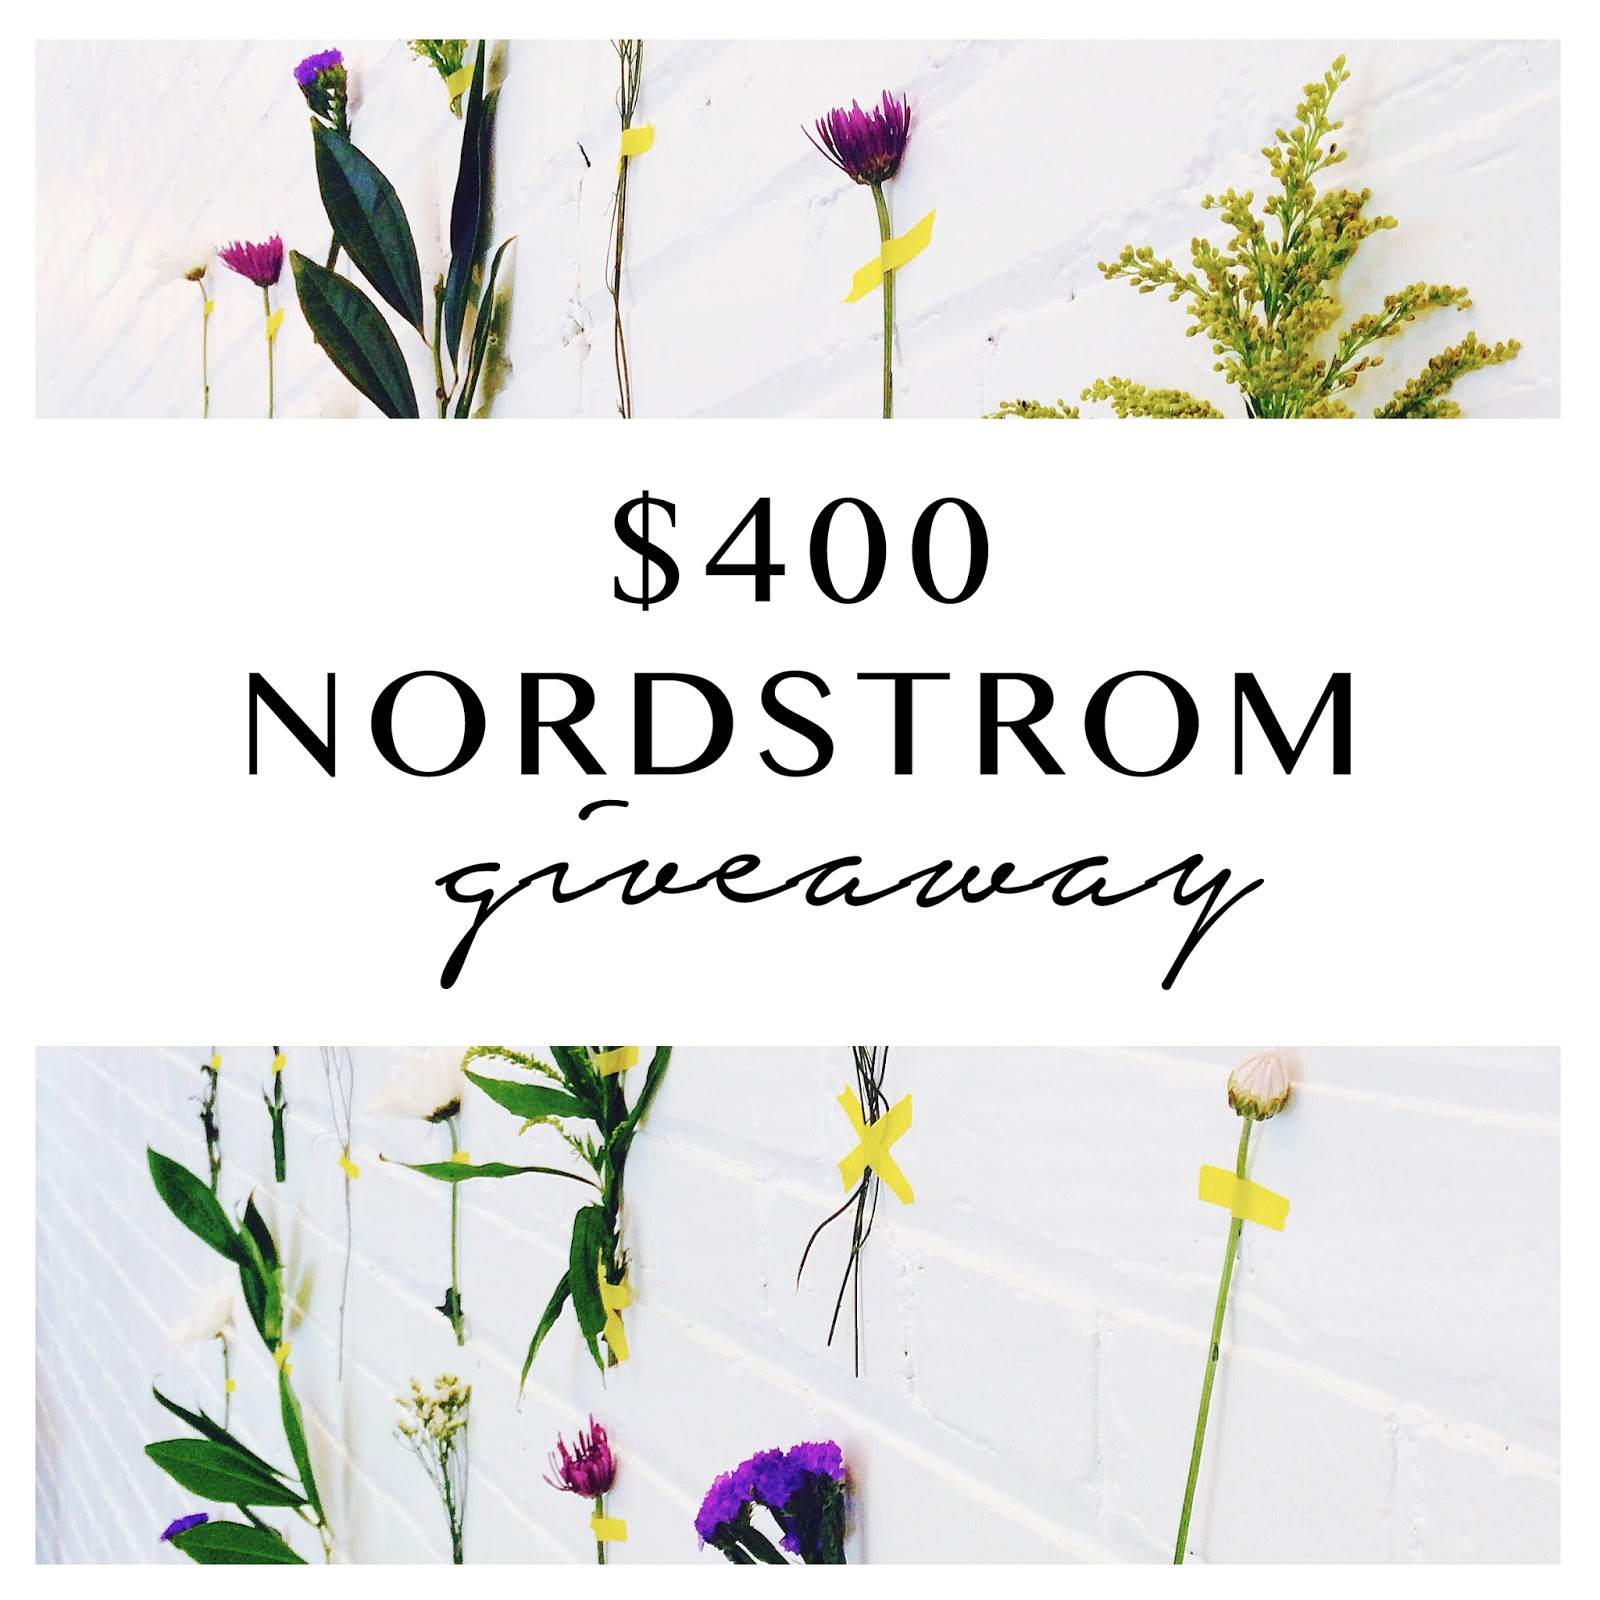 nordstrom sweepstakes nordstrom giveaway jody beth 1370